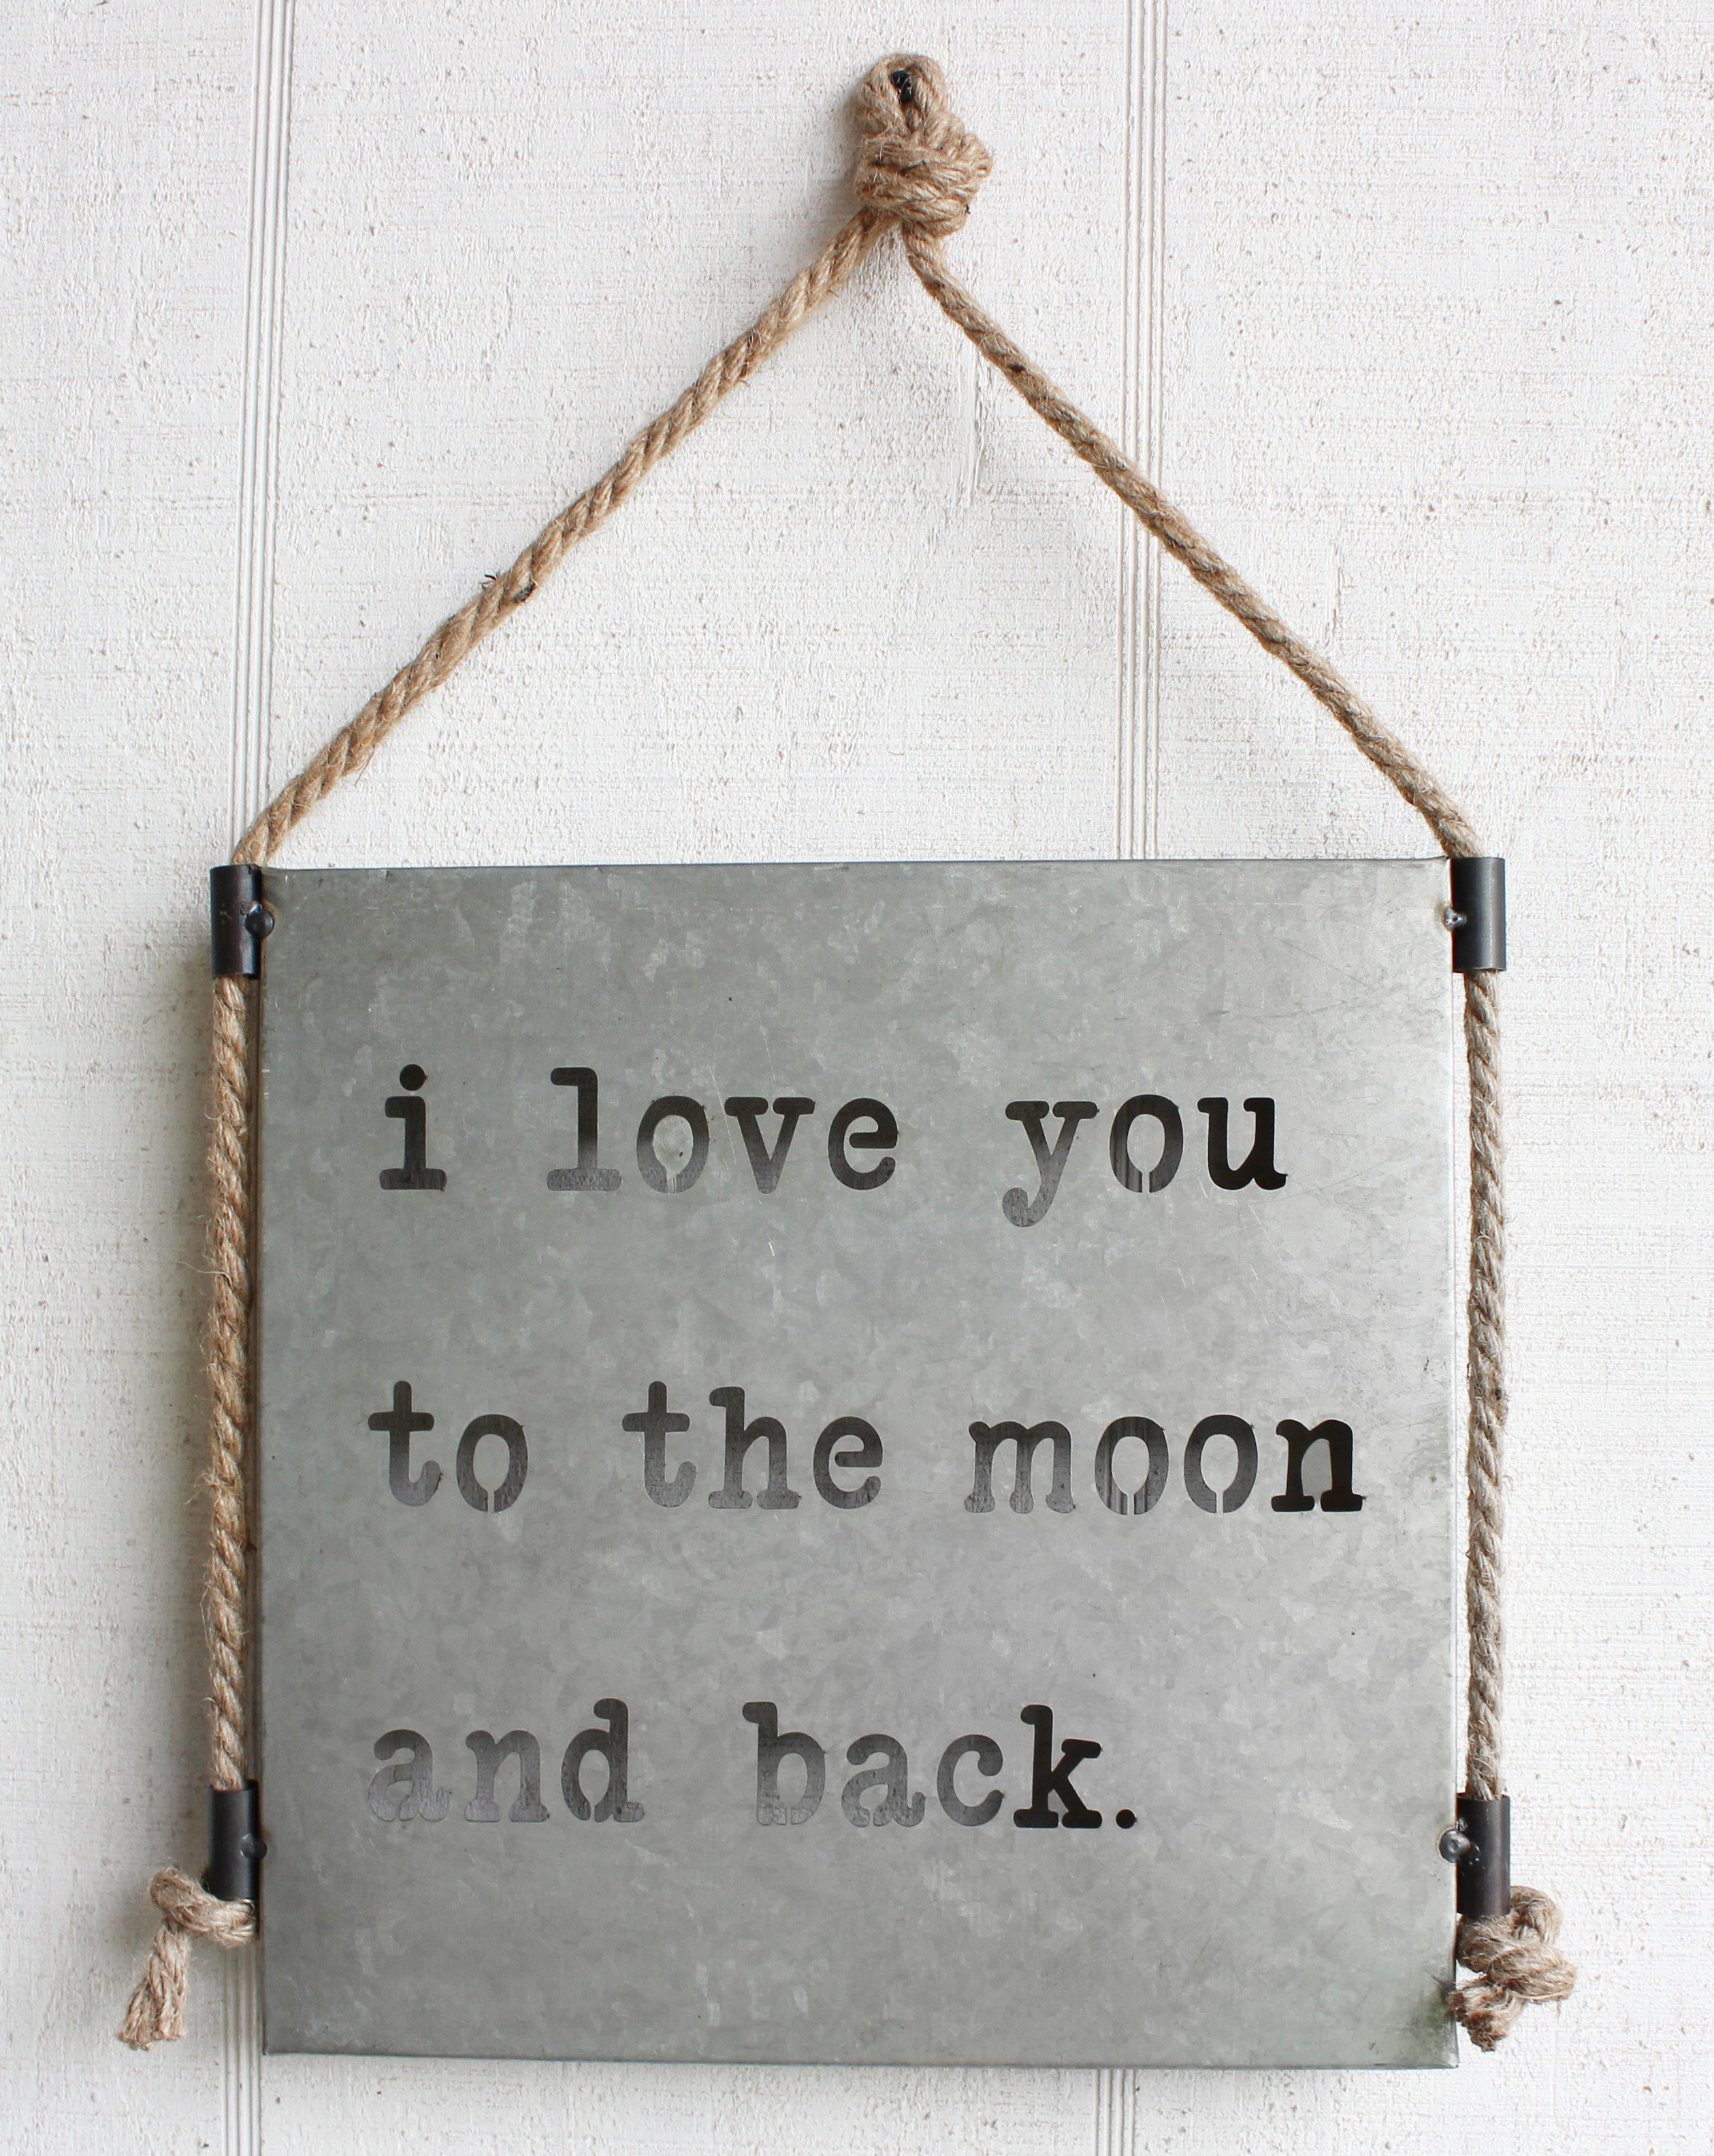 Moon And Back Sign Metal Wall Décor intended for Metal Rope Wall Sign Wall Decor (Image 25 of 30)